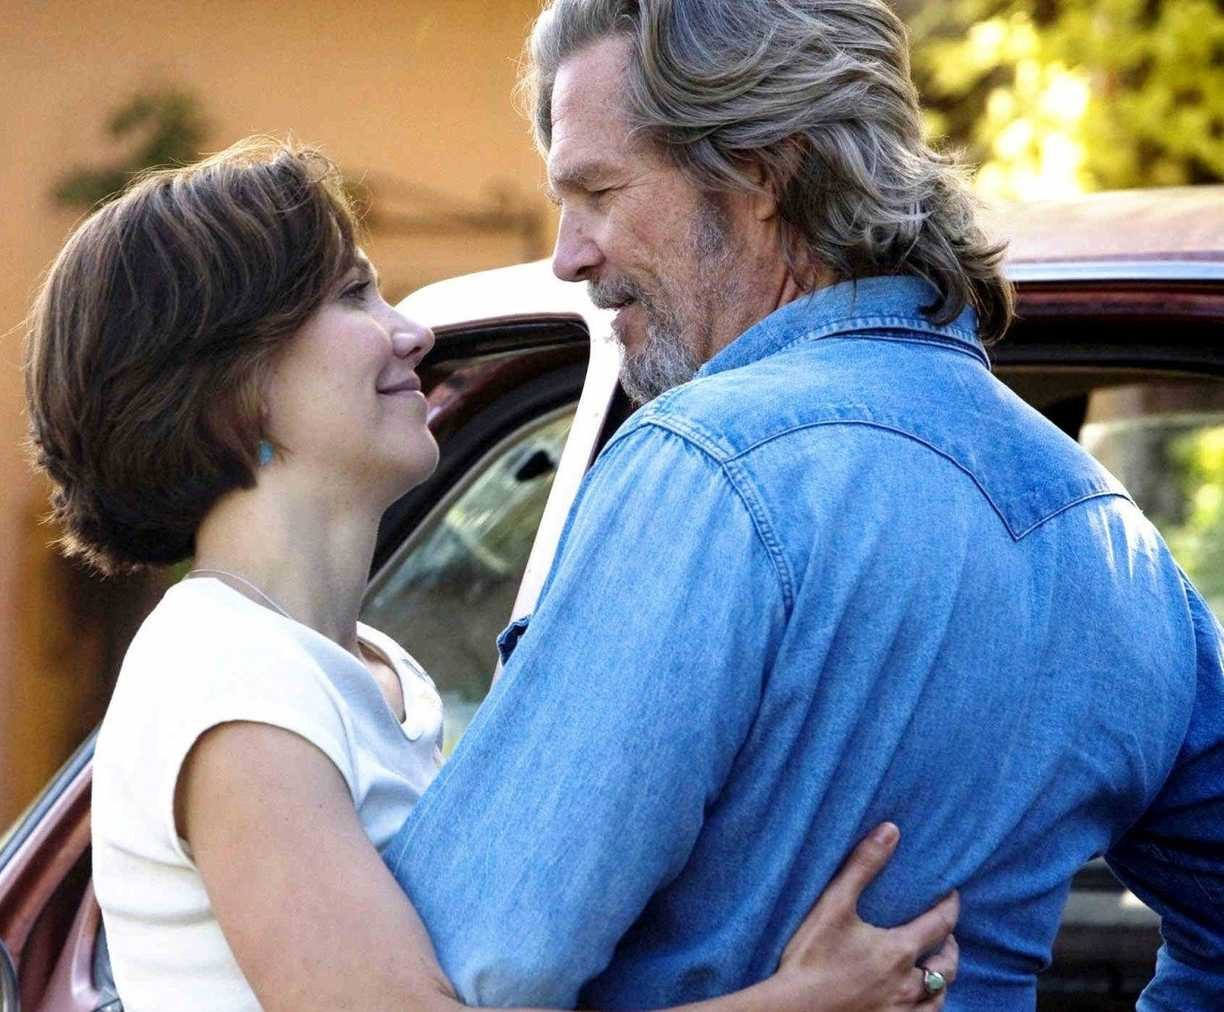 24 1 e1601977332638 20 Unrealistic (And Slightly Uncomfortable) Age Gaps Between Film Couples